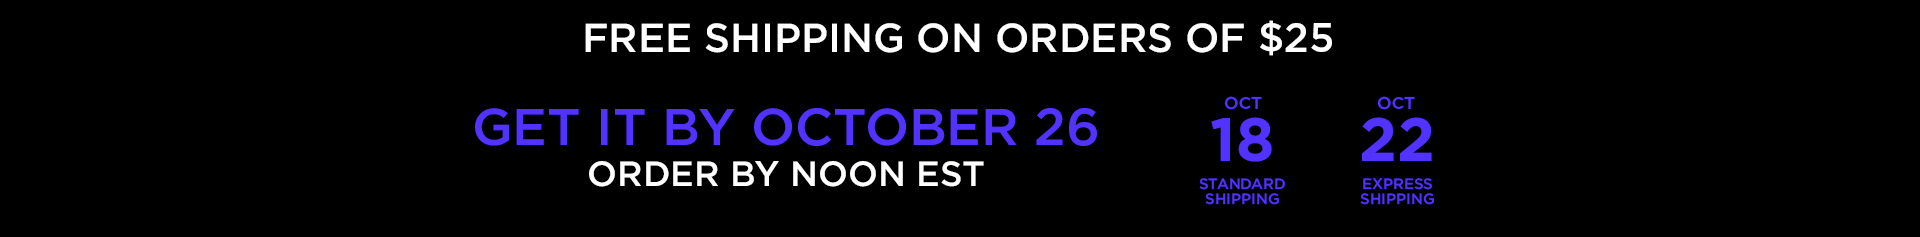 Free shipping on orders of $25. Get it by October 27. Order by noon est. Oct 21 standard shipping. October 22 express shipping.